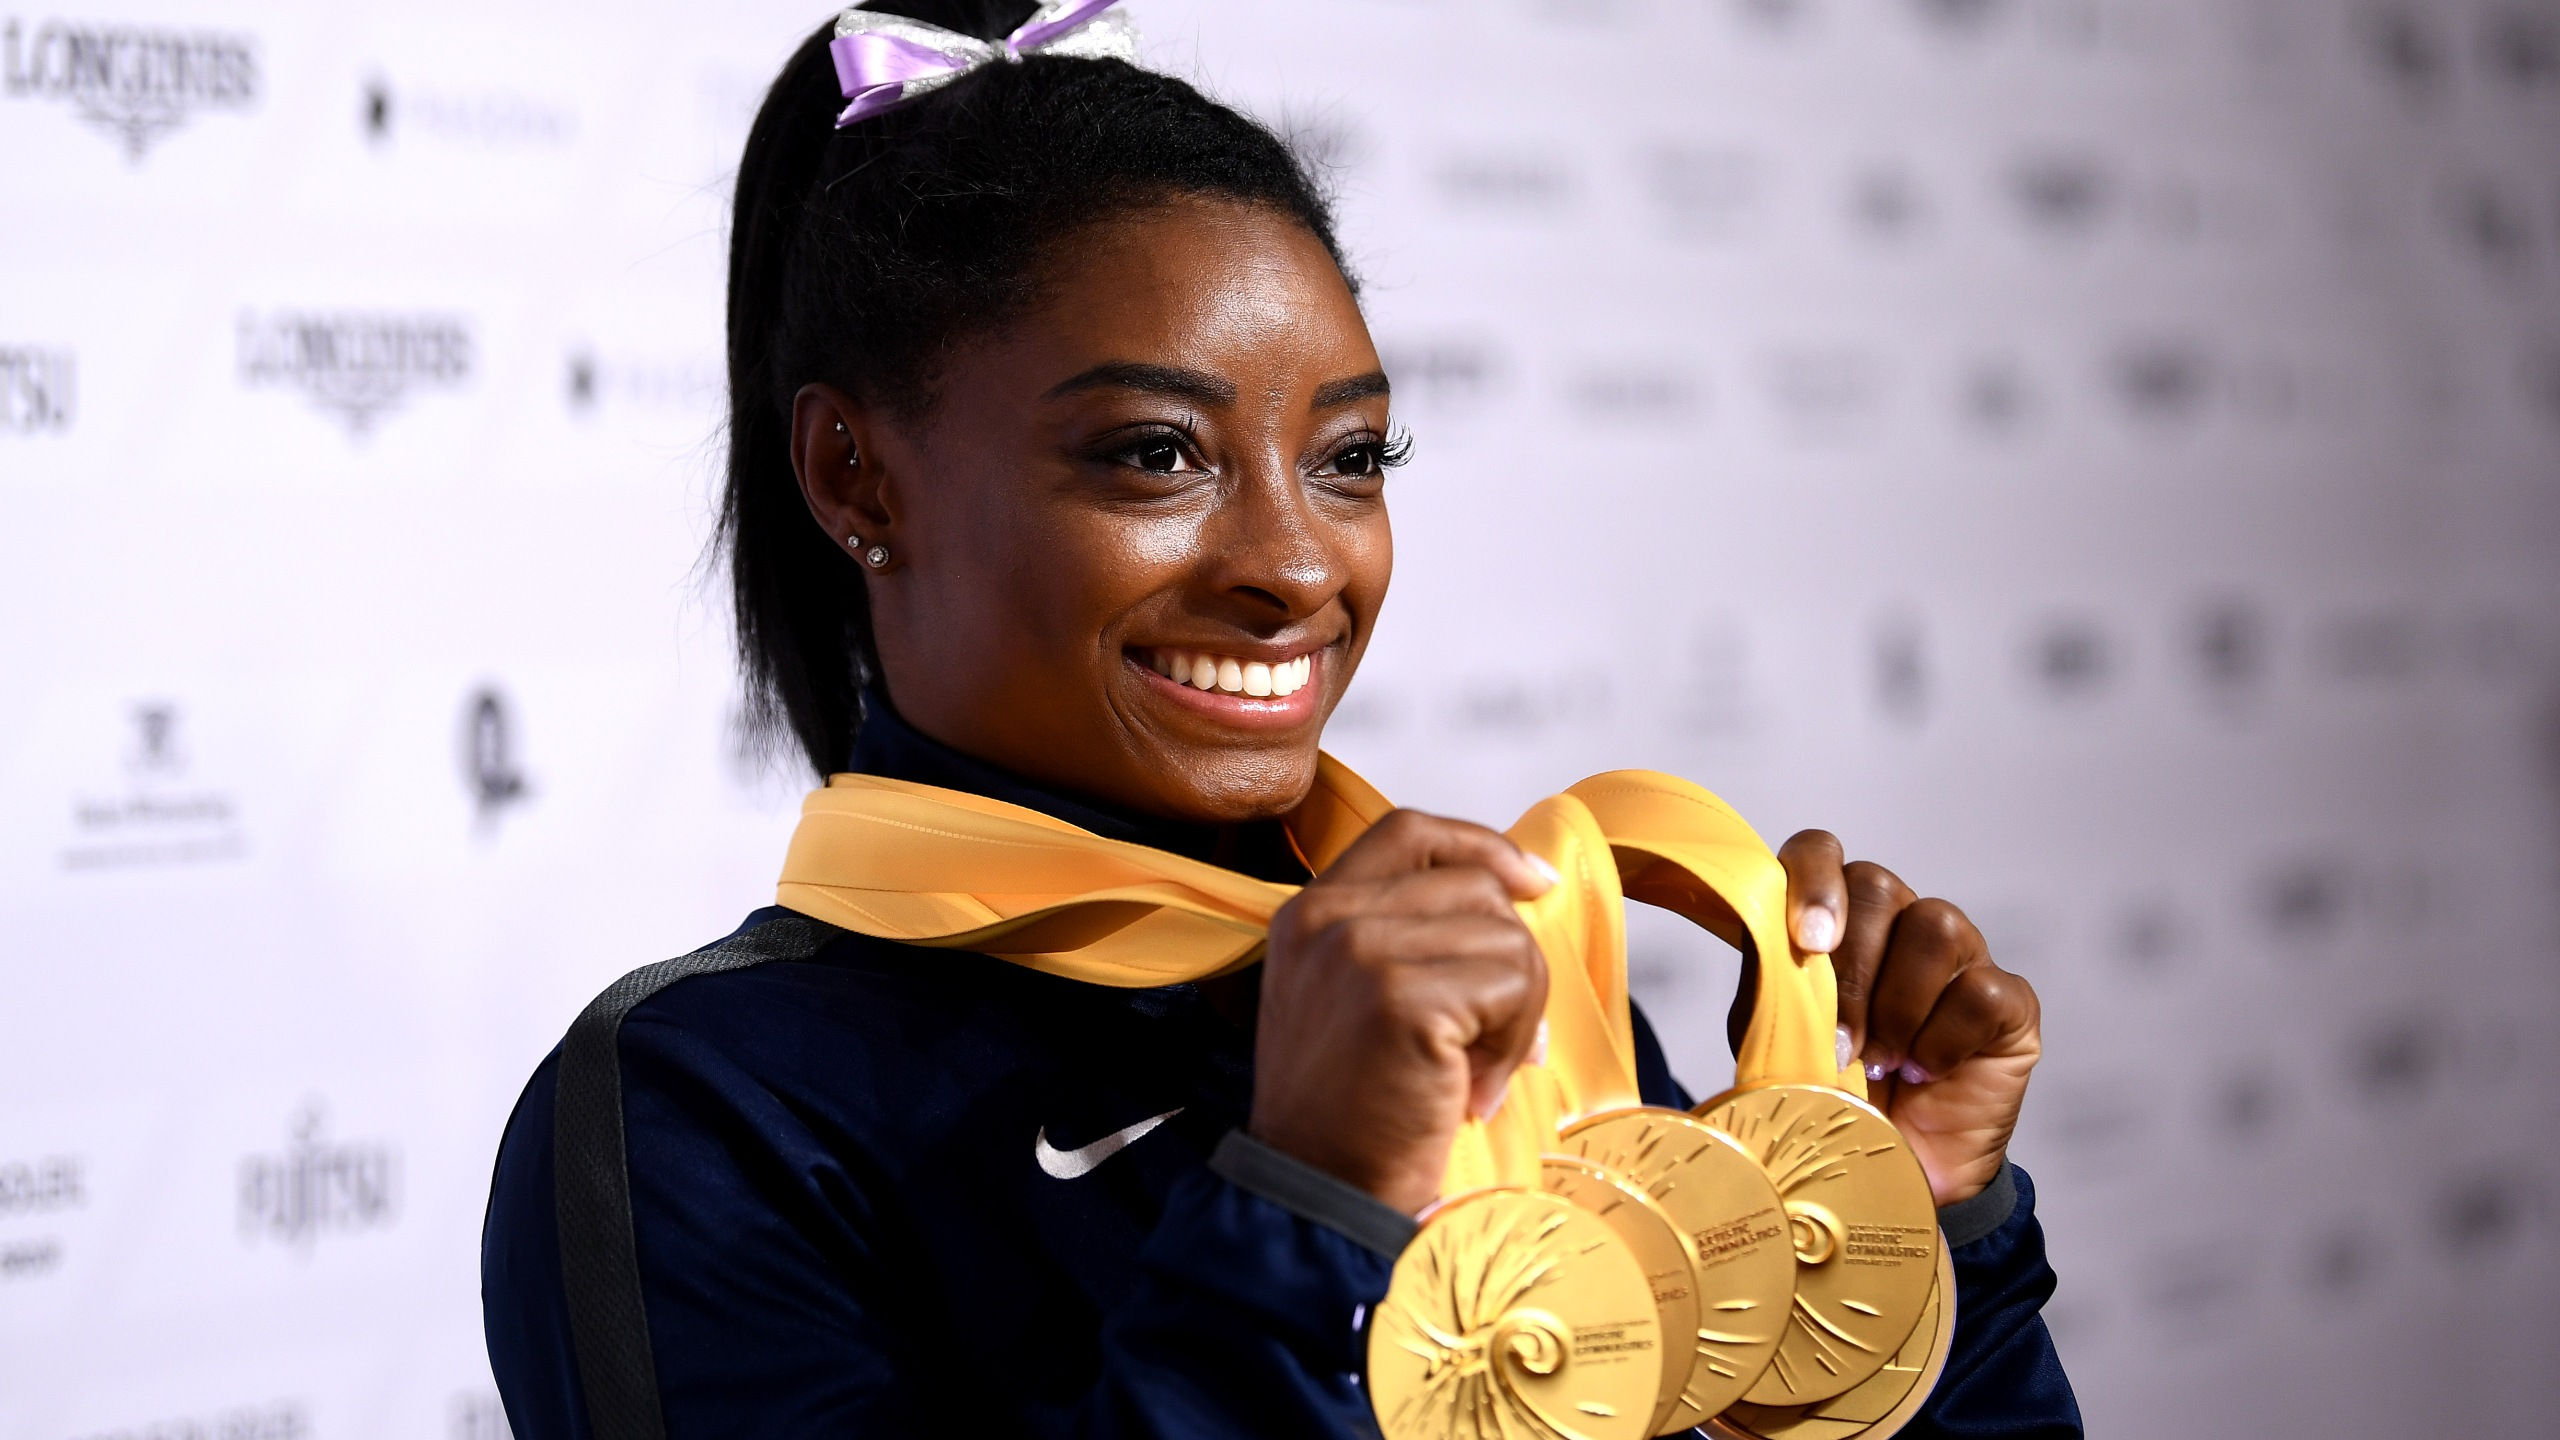 Simone Biles poses for photos with her multiple gold medals during day 10 of the 49th FIG Artistic Gymnastics World Championships on Oct. 13, 2019, in Stuttgart, Germany. (Credit: Laurence Griffiths/Getty Images)